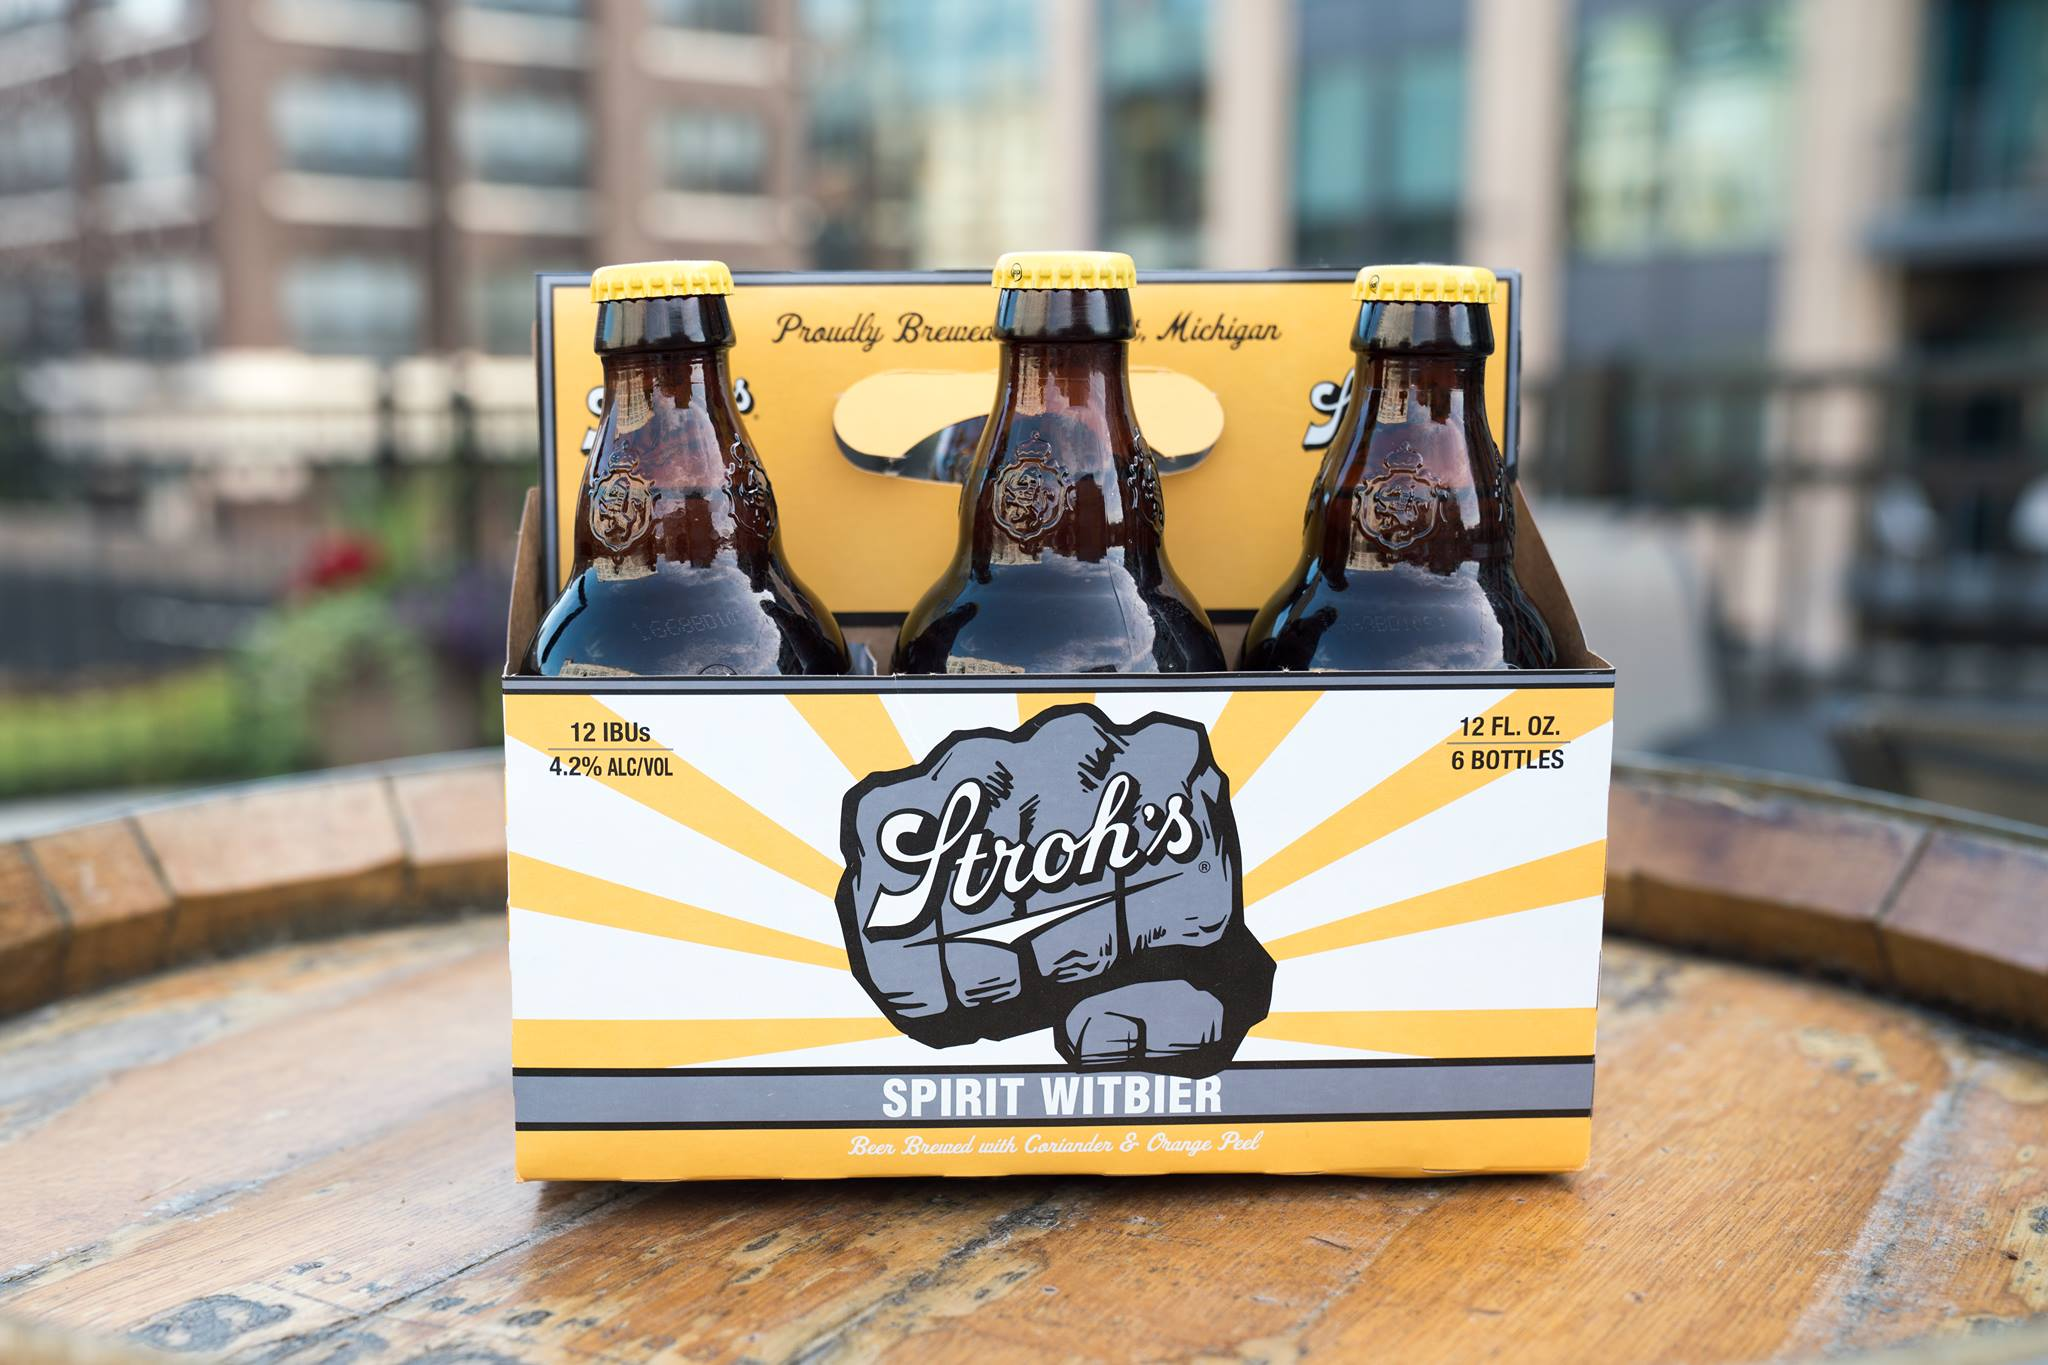 Stroh's Releases Seasonal Spirit Witbier In Michigan